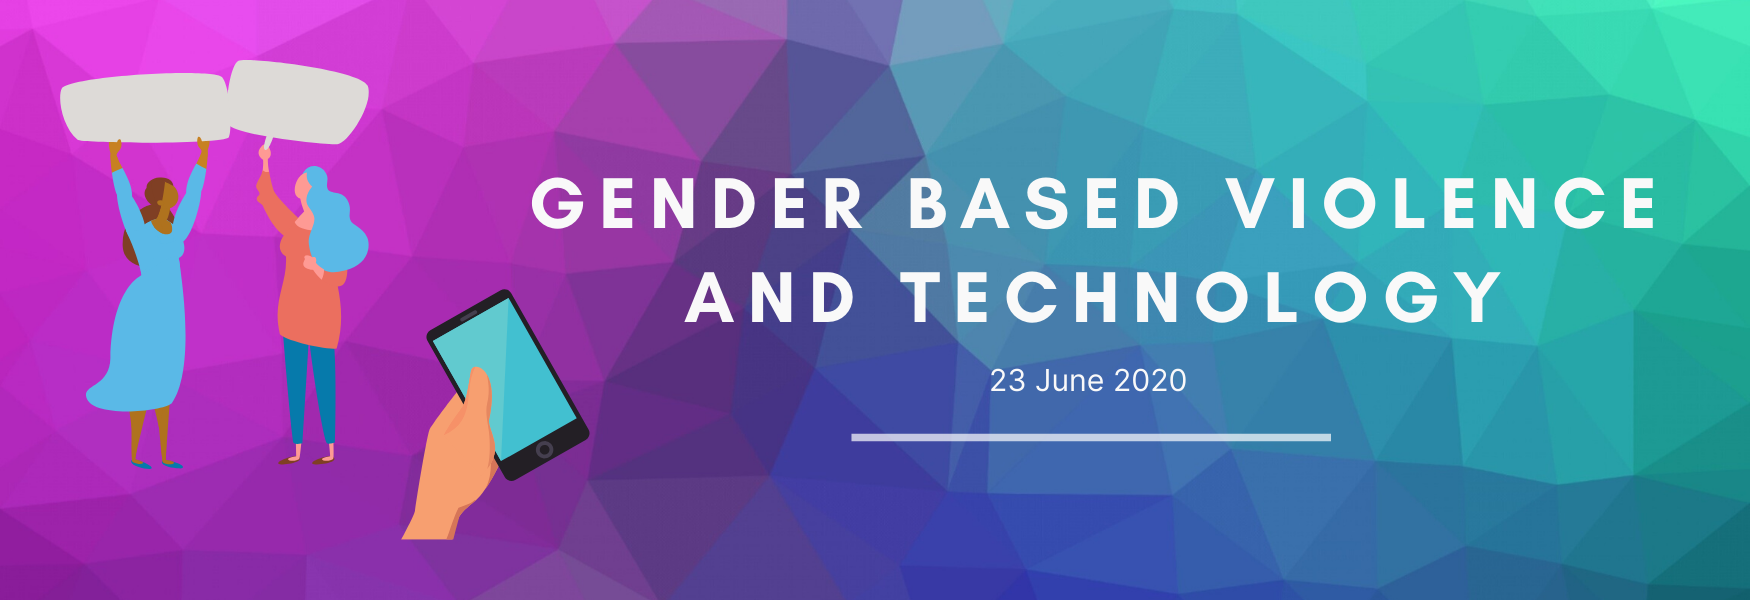 Gender-Based Violence and Technology